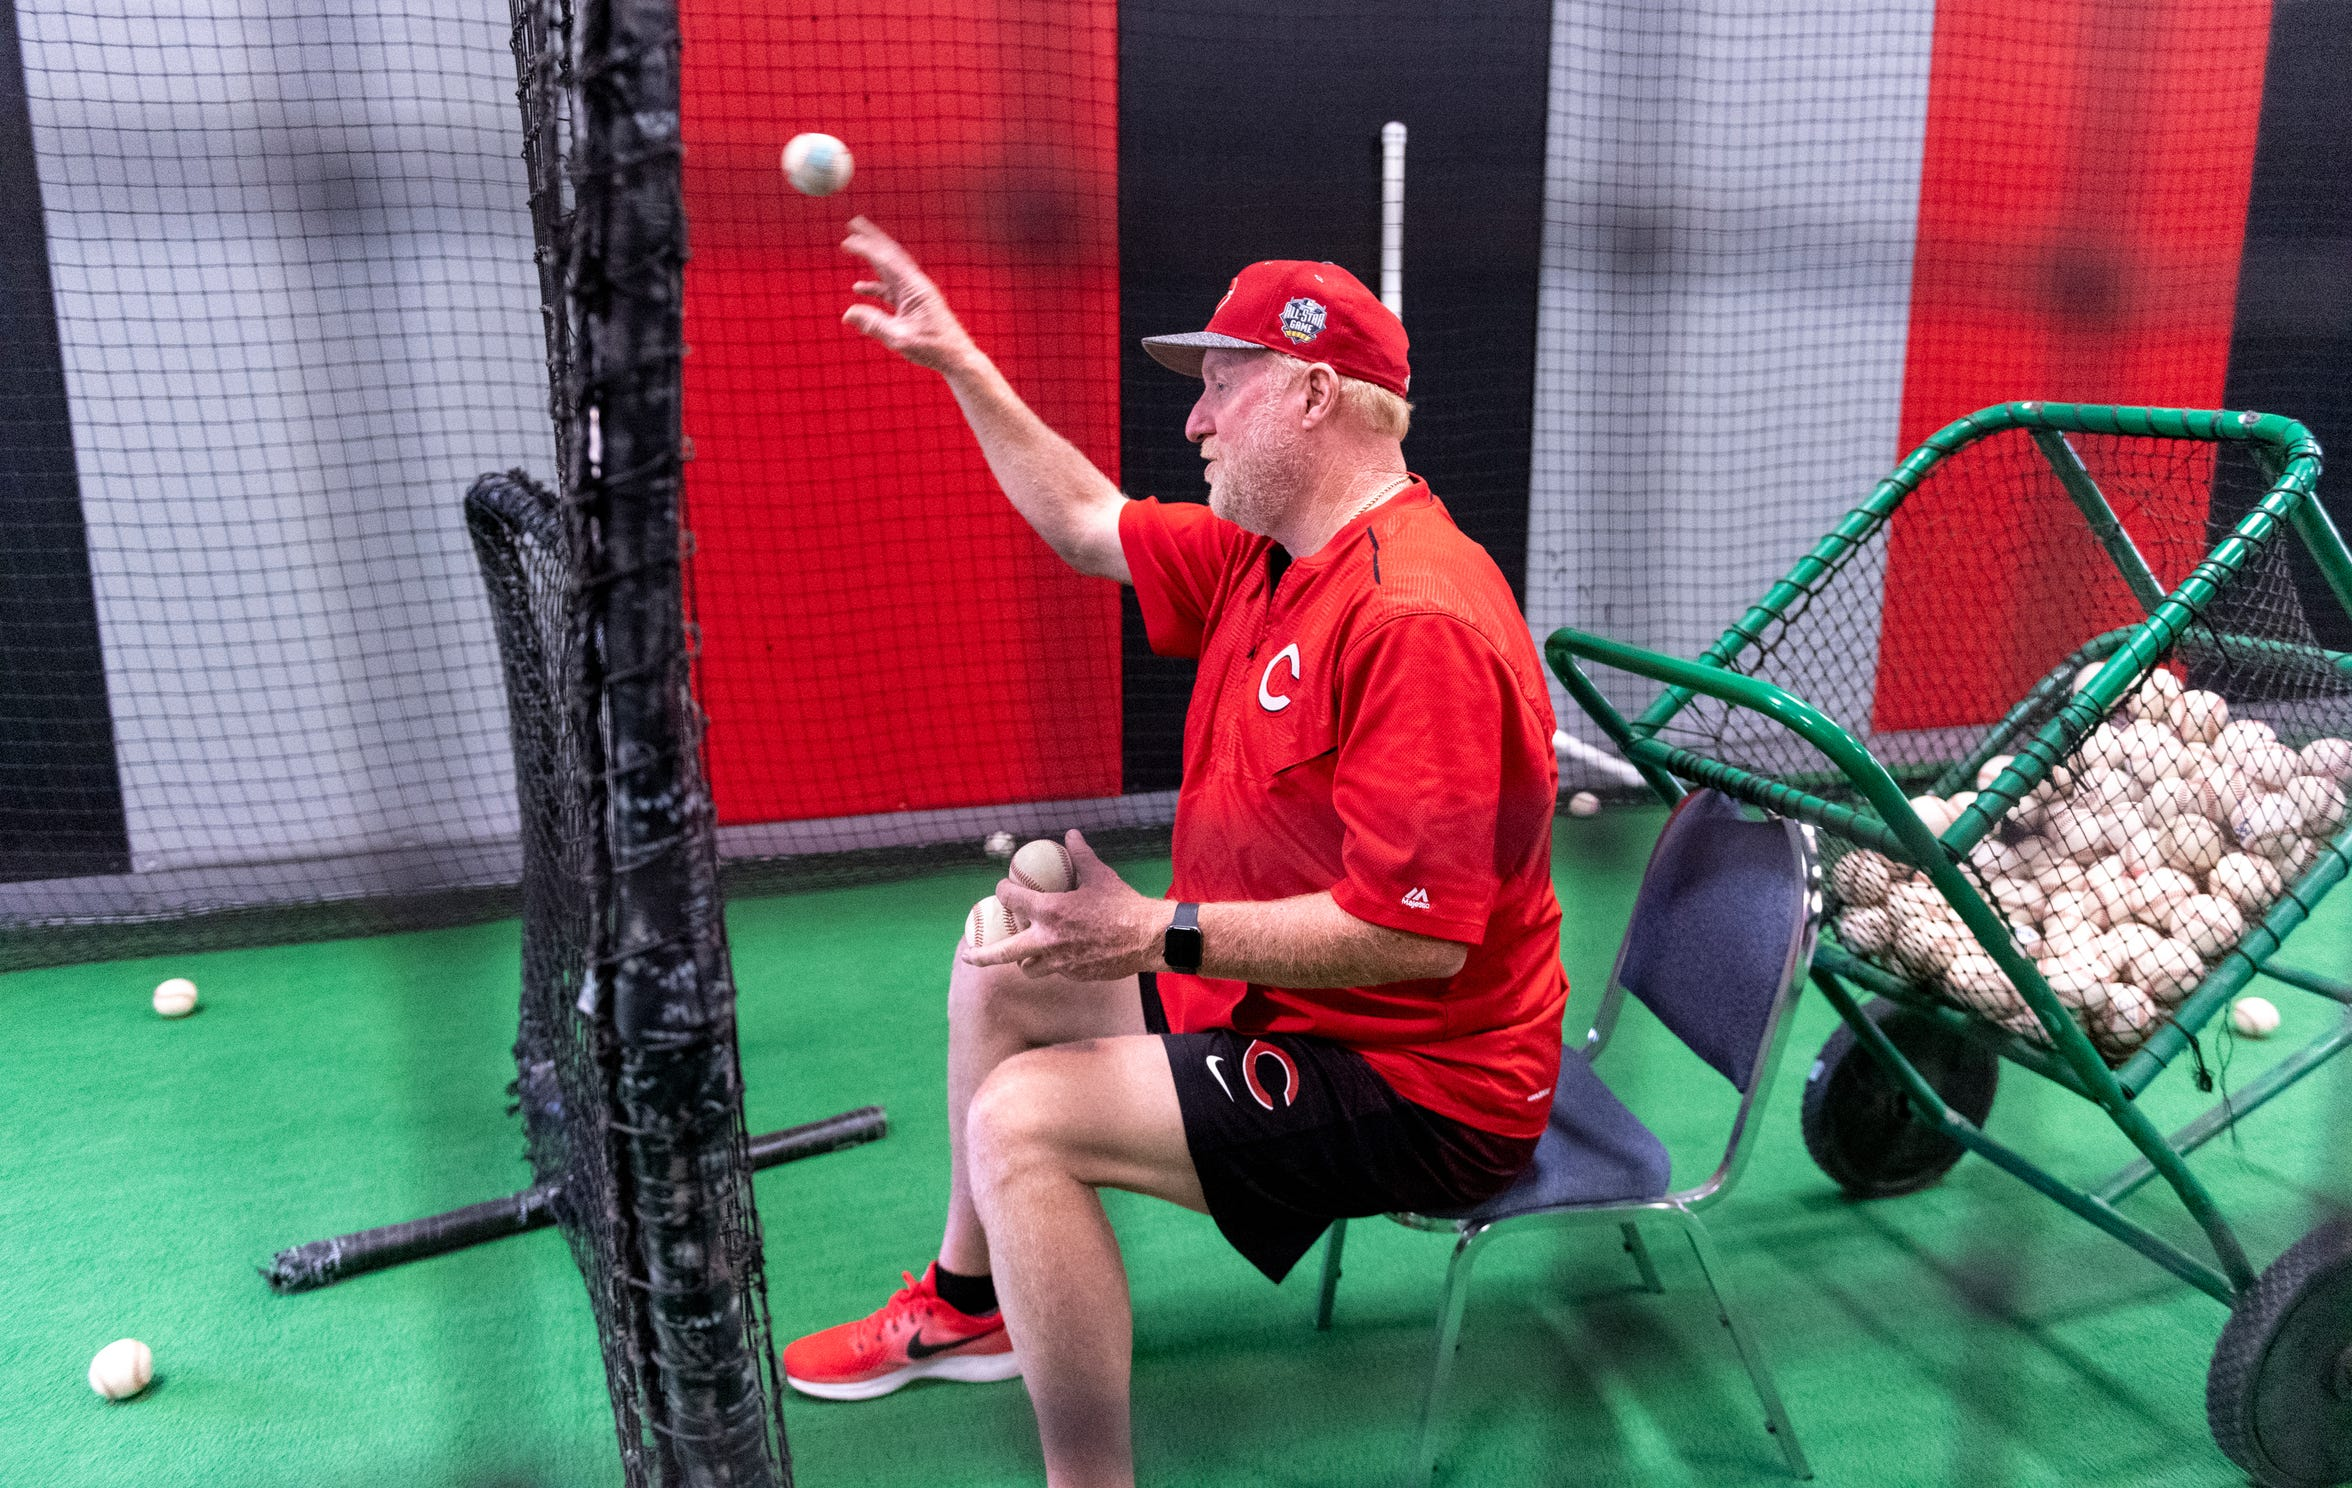 Former Cincinnati Reds pitcher Ron Robinson works with local young people on baseball skills at The Dugout in Visalia on Tuesday, October 29, 2019.